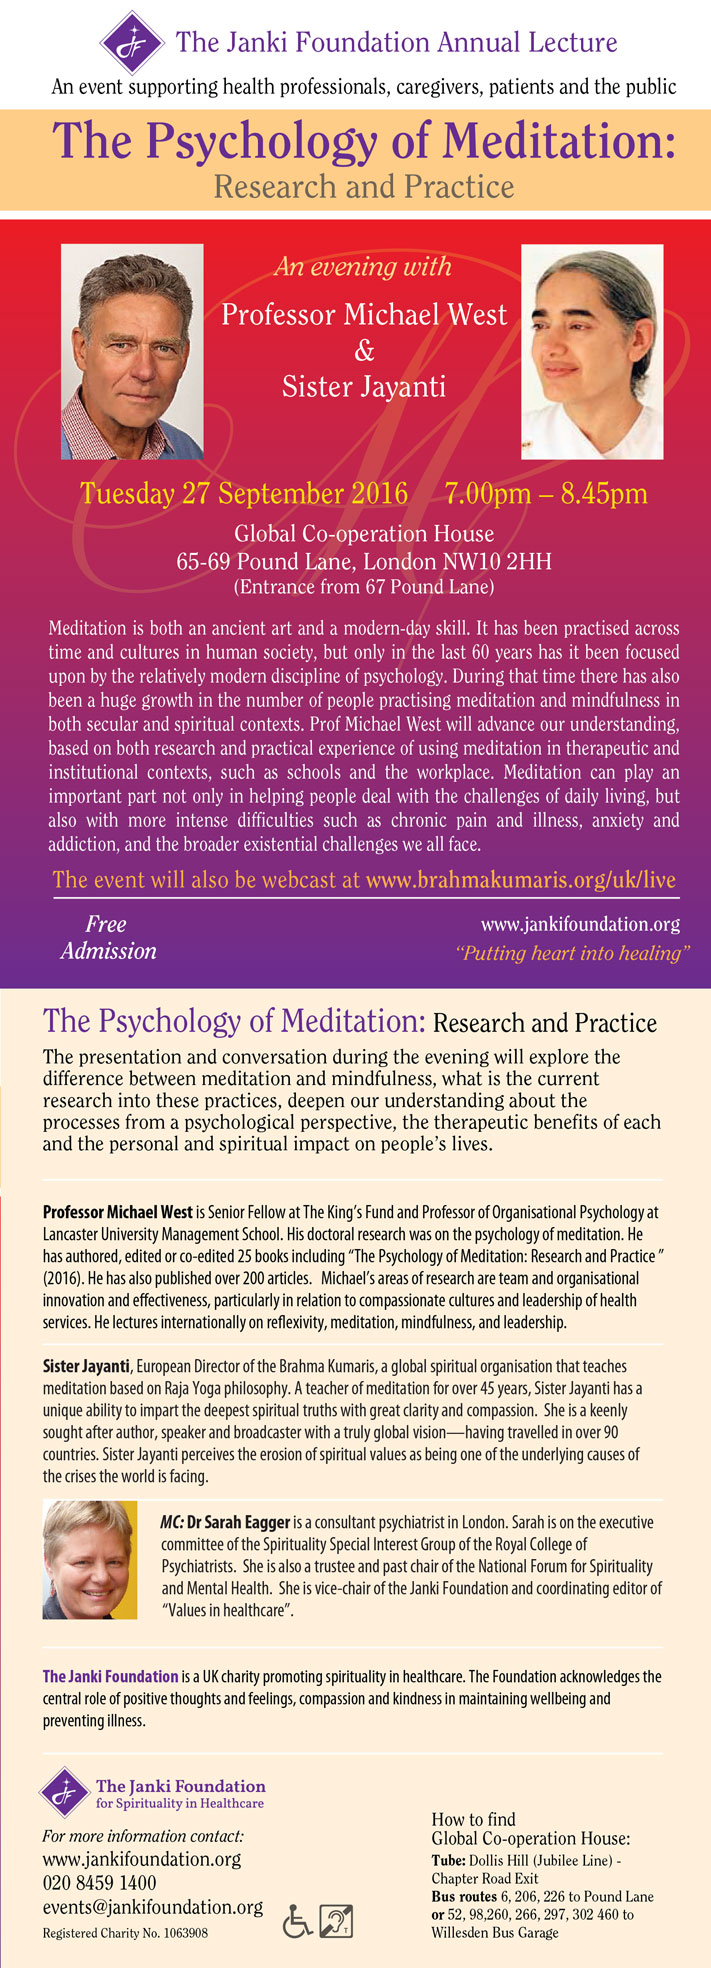 The Psychology of Meditation: Research & Practice